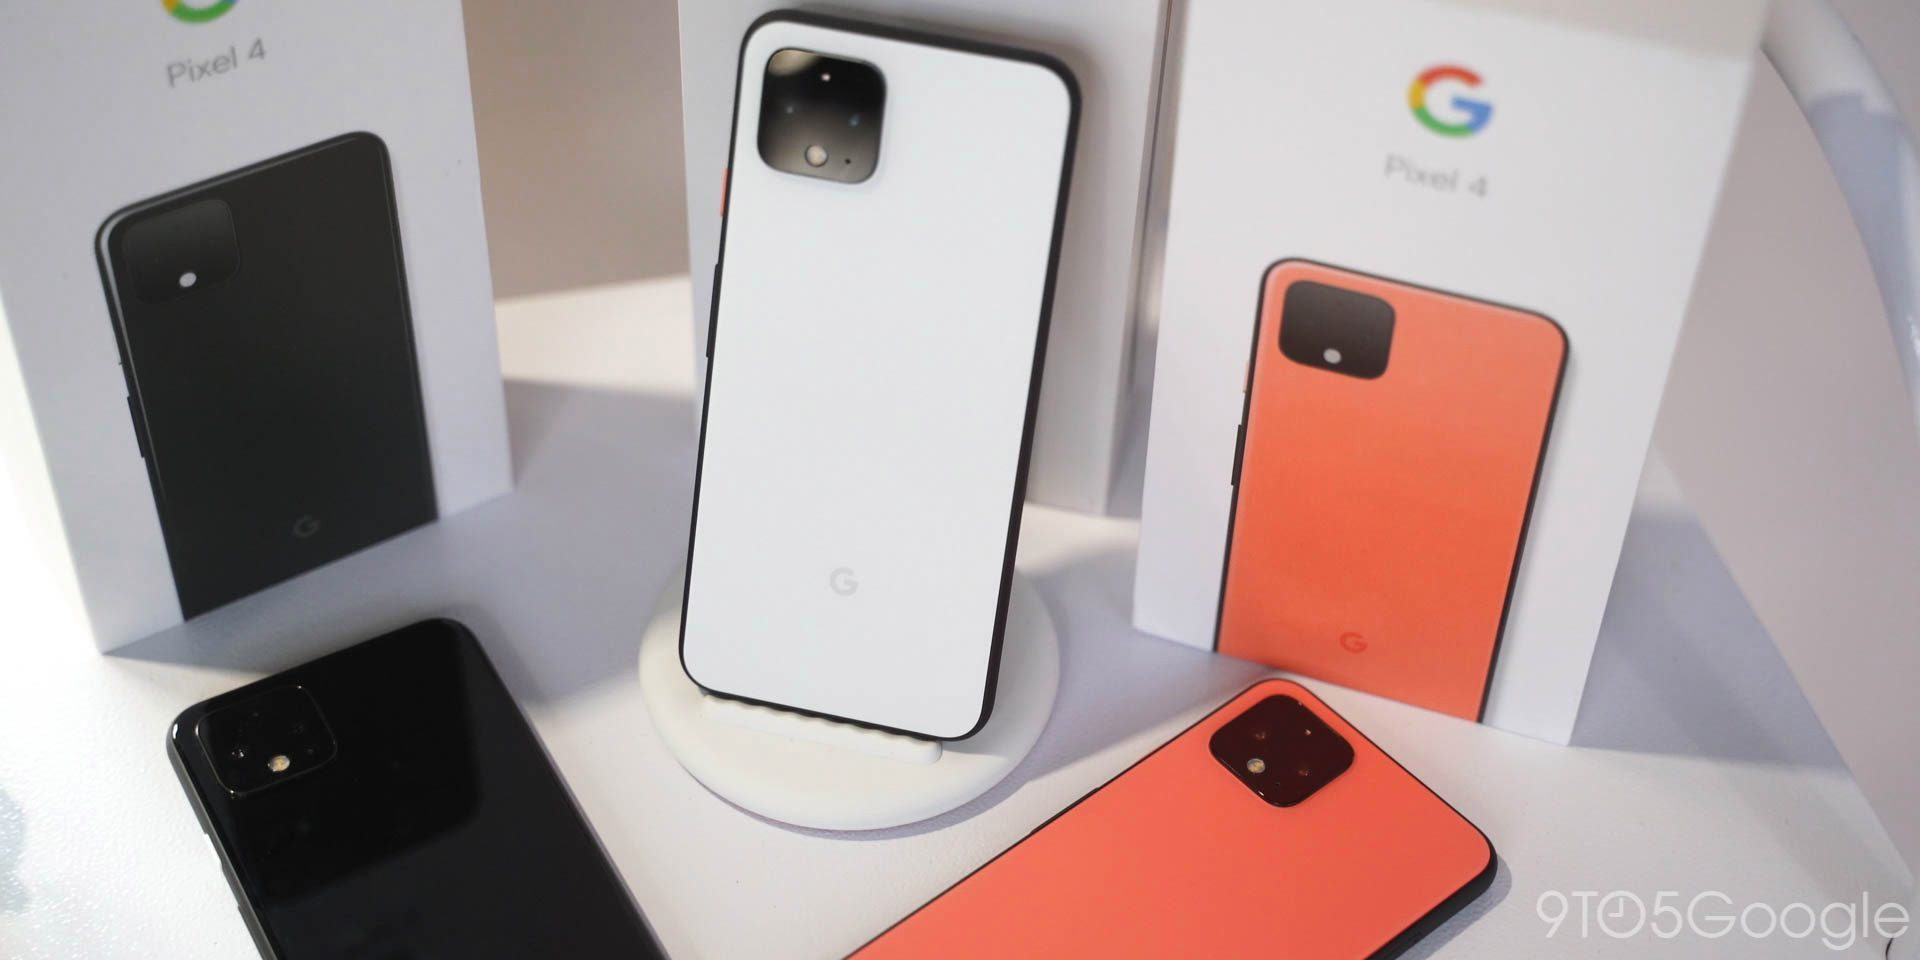 Verizon will reportedly stop selling Pixel, including 4a and 5